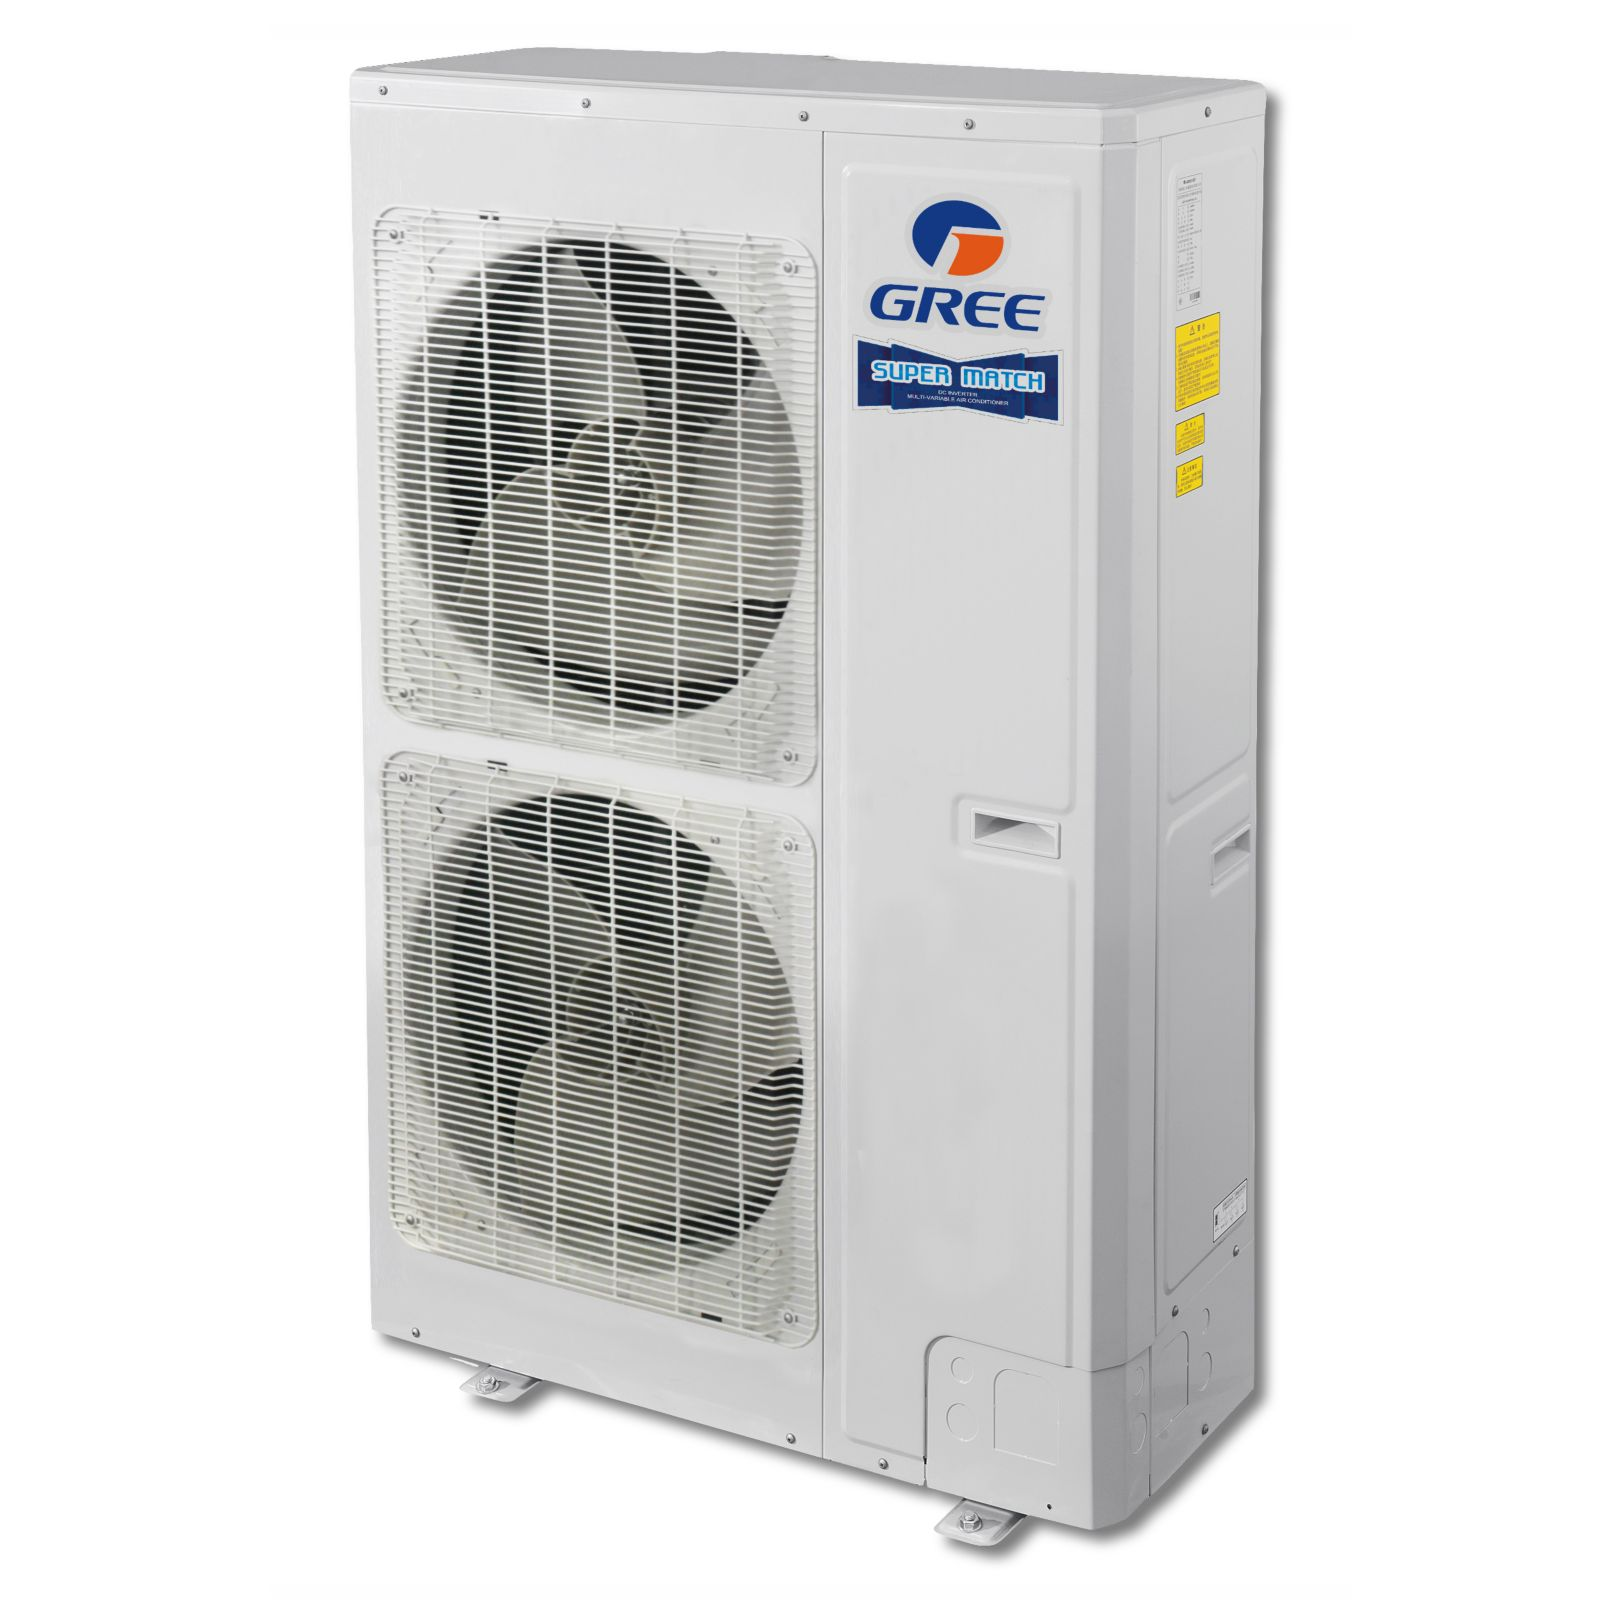 GREE MULTI48HP230V1AO - Super Multi Zone Inverter Heat Pump 47,800 Cooling BTU, 208-230/60